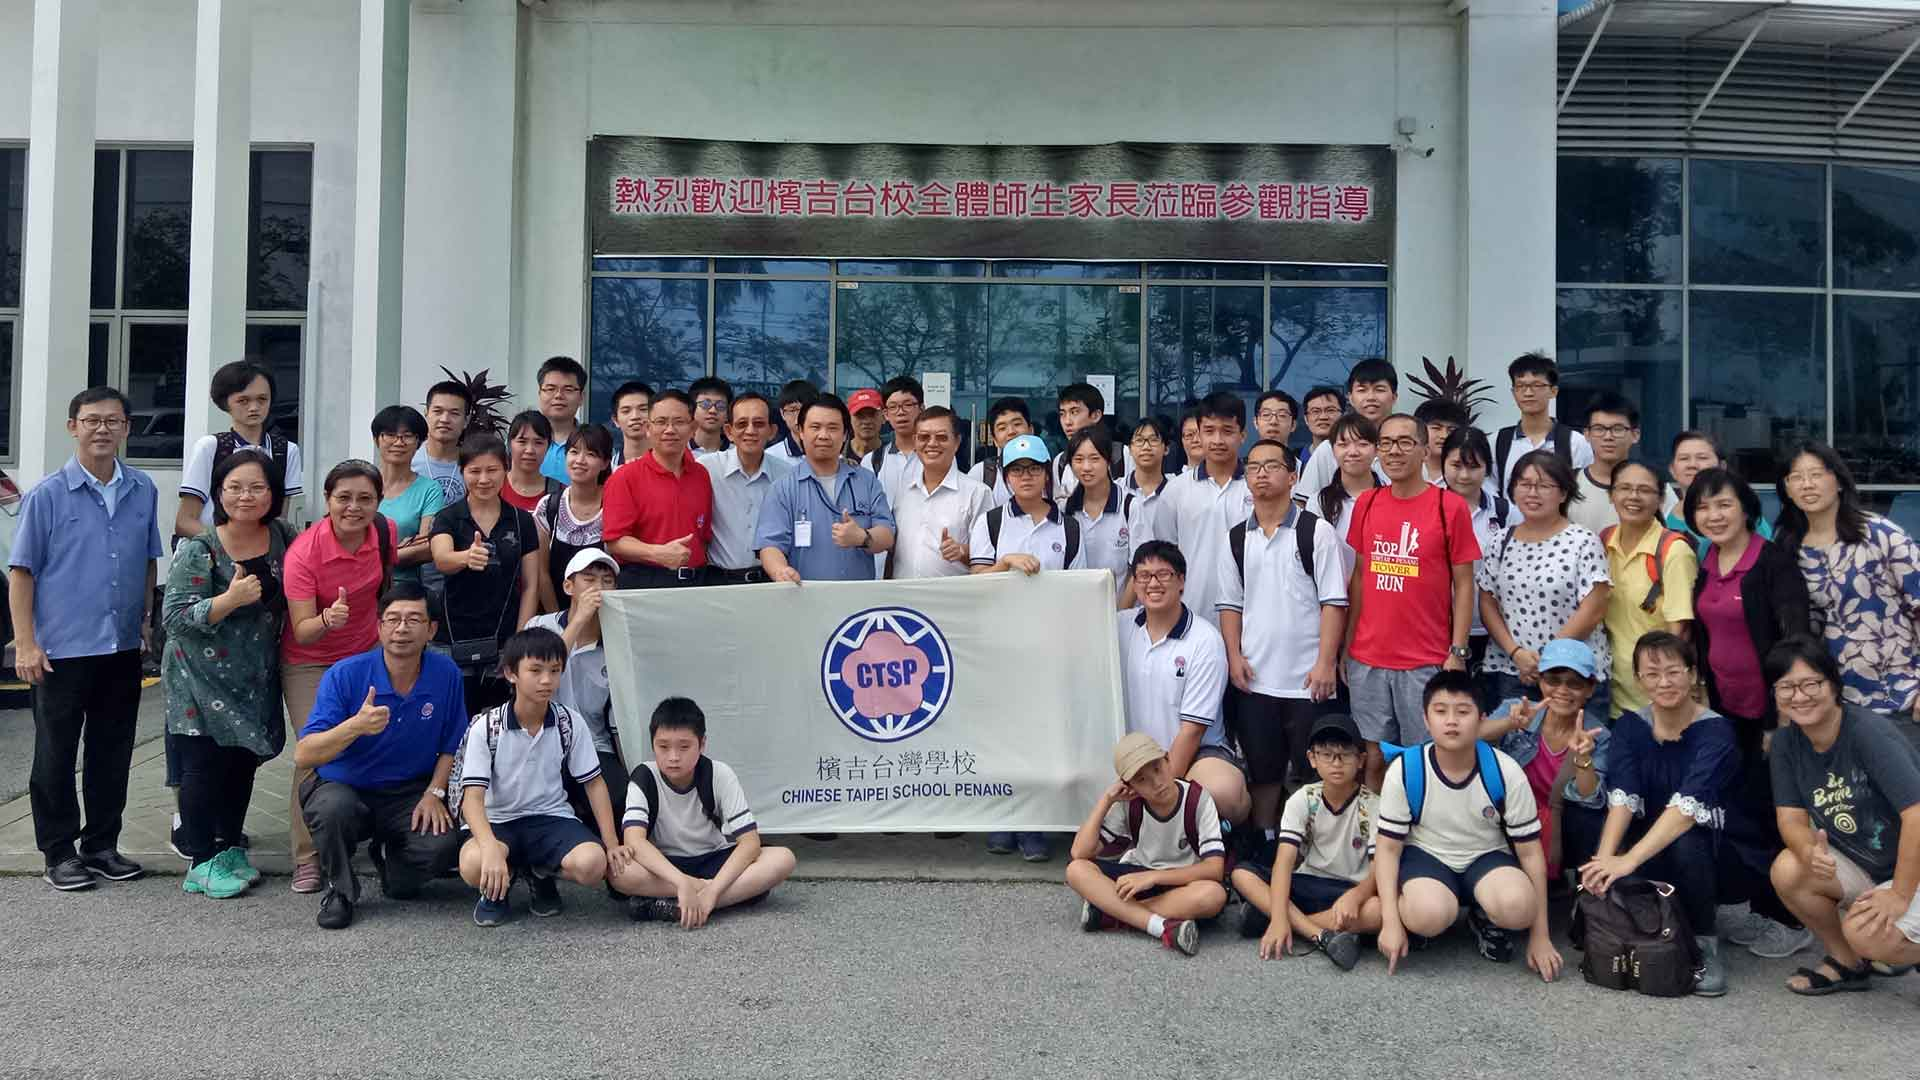 Visit from Chinese Taipei School Penang